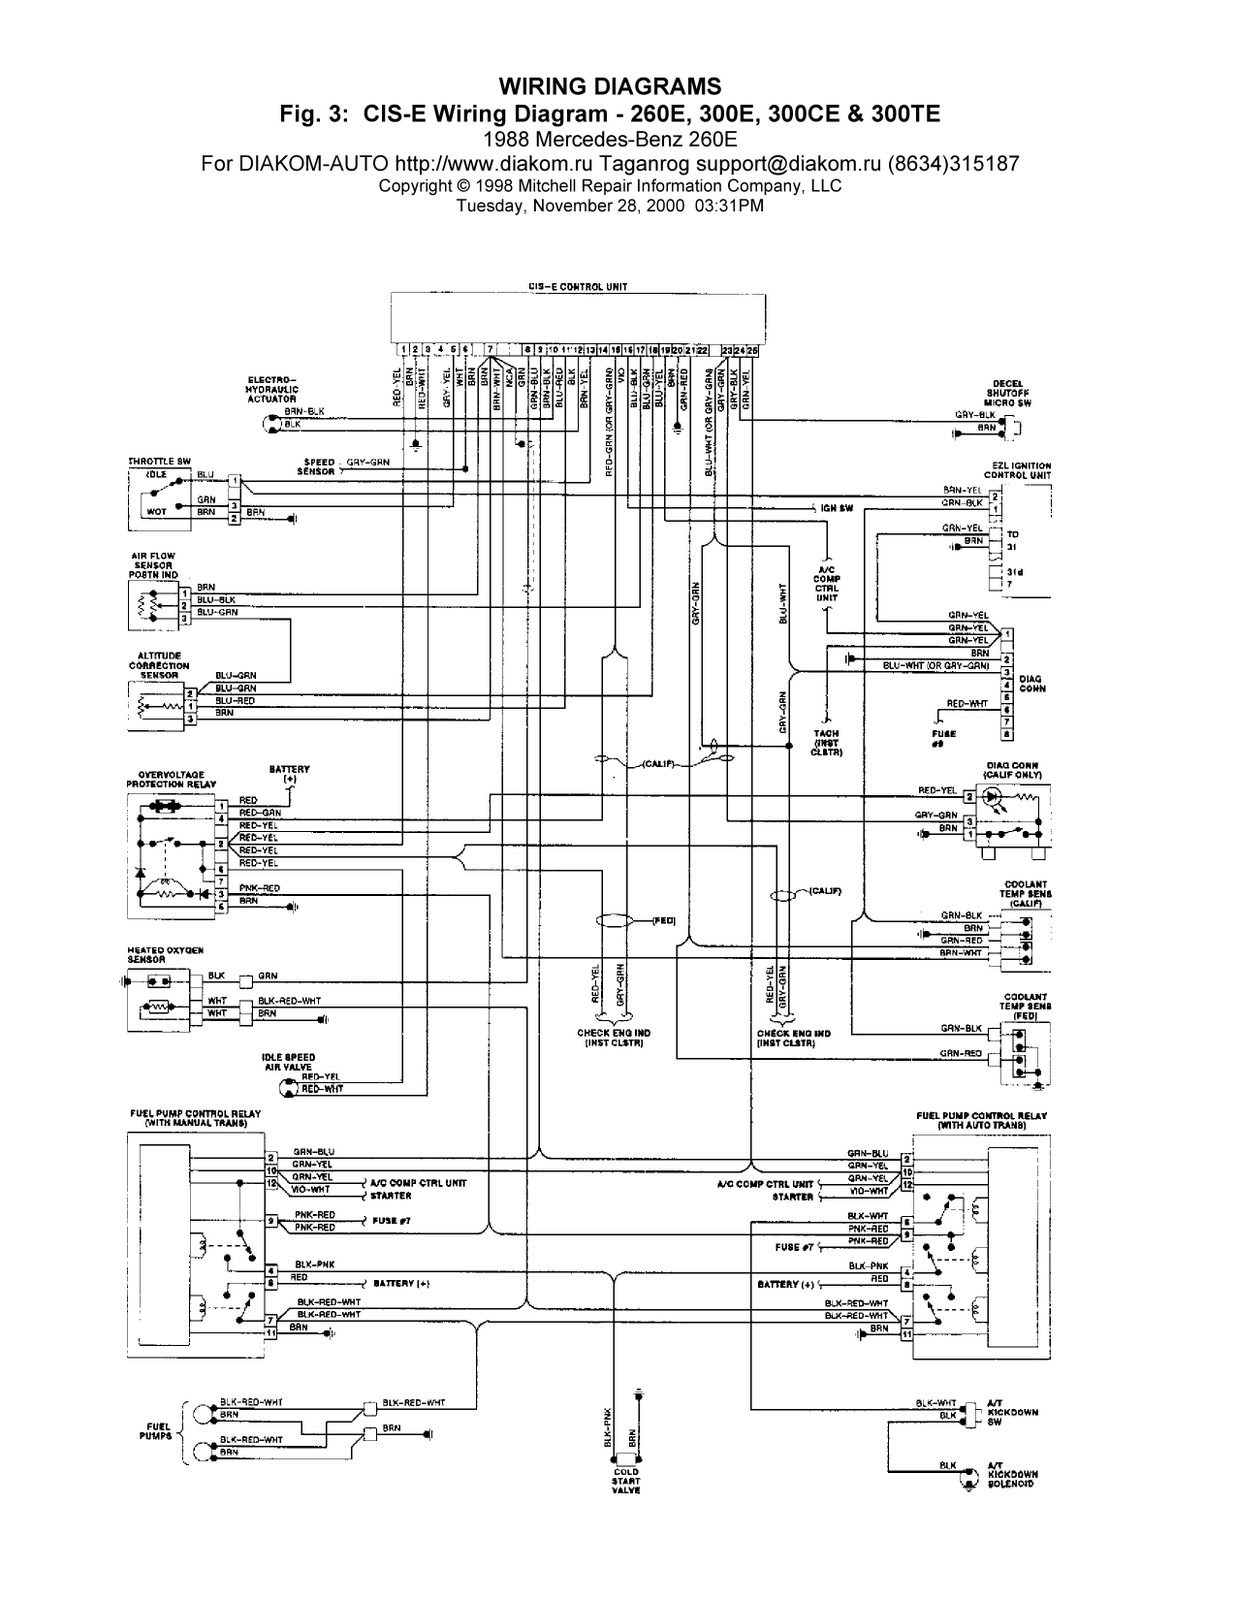 Mercedes r129 wiring diagram